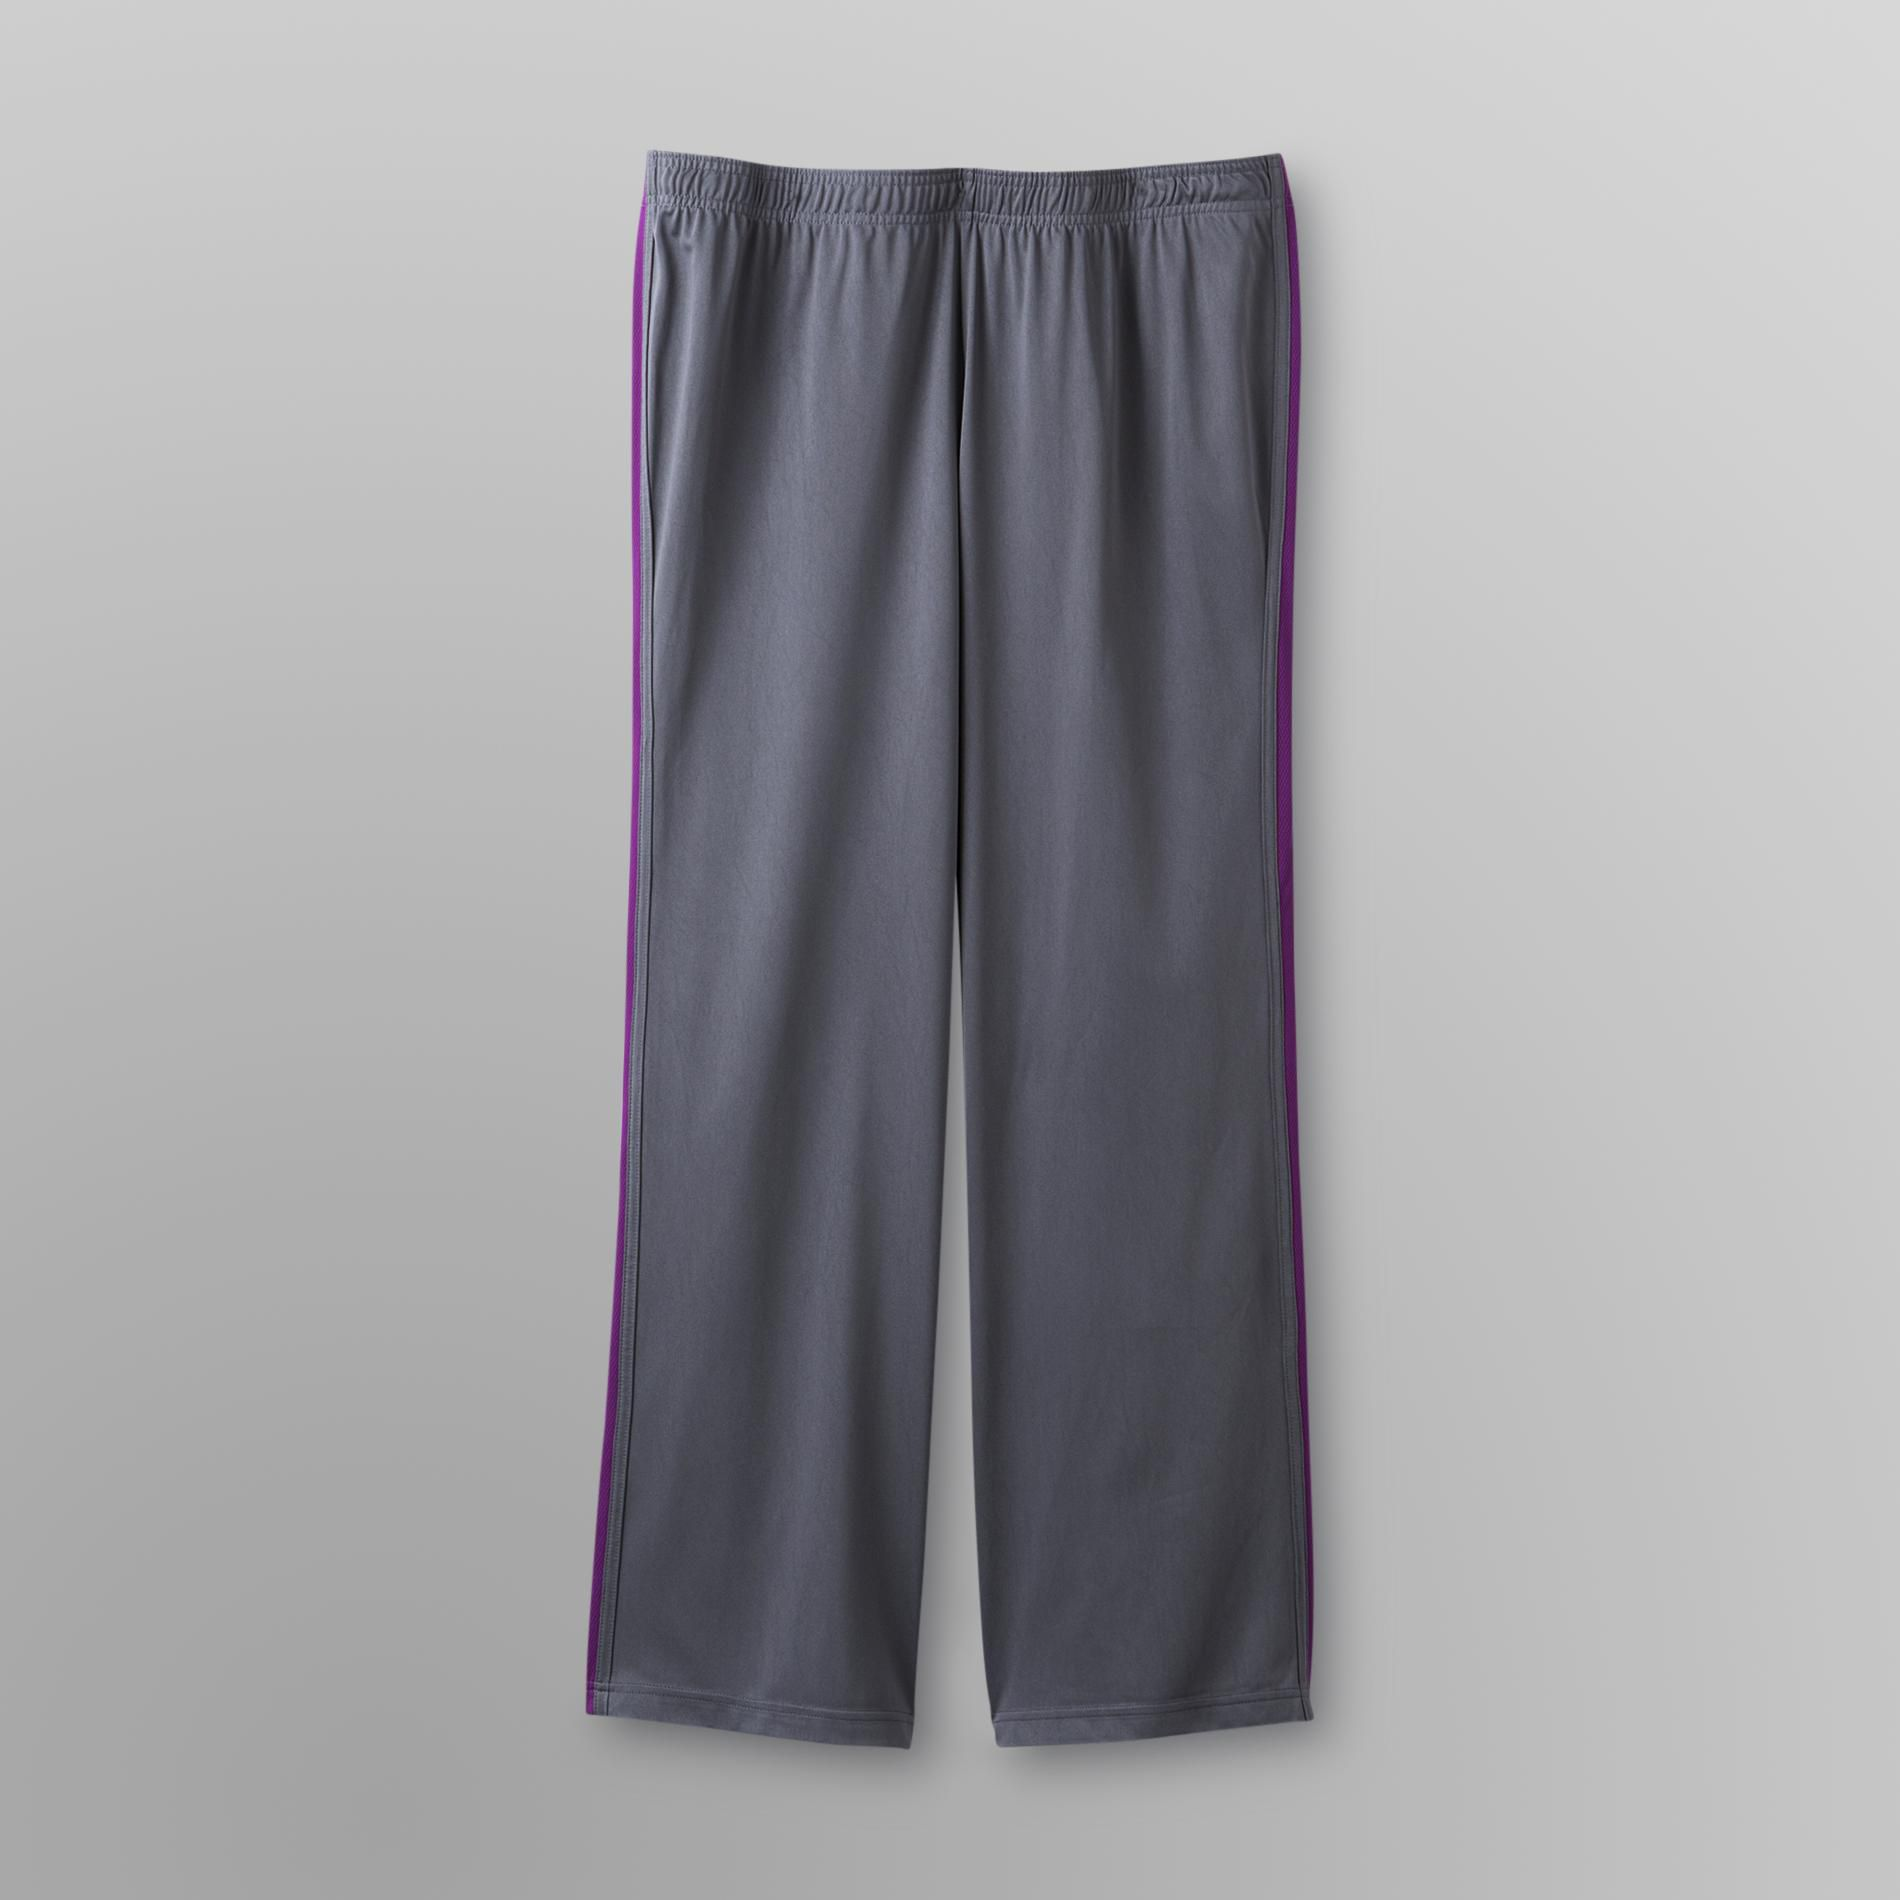 Athletech Women's Plus Workout Pants at Kmart.com